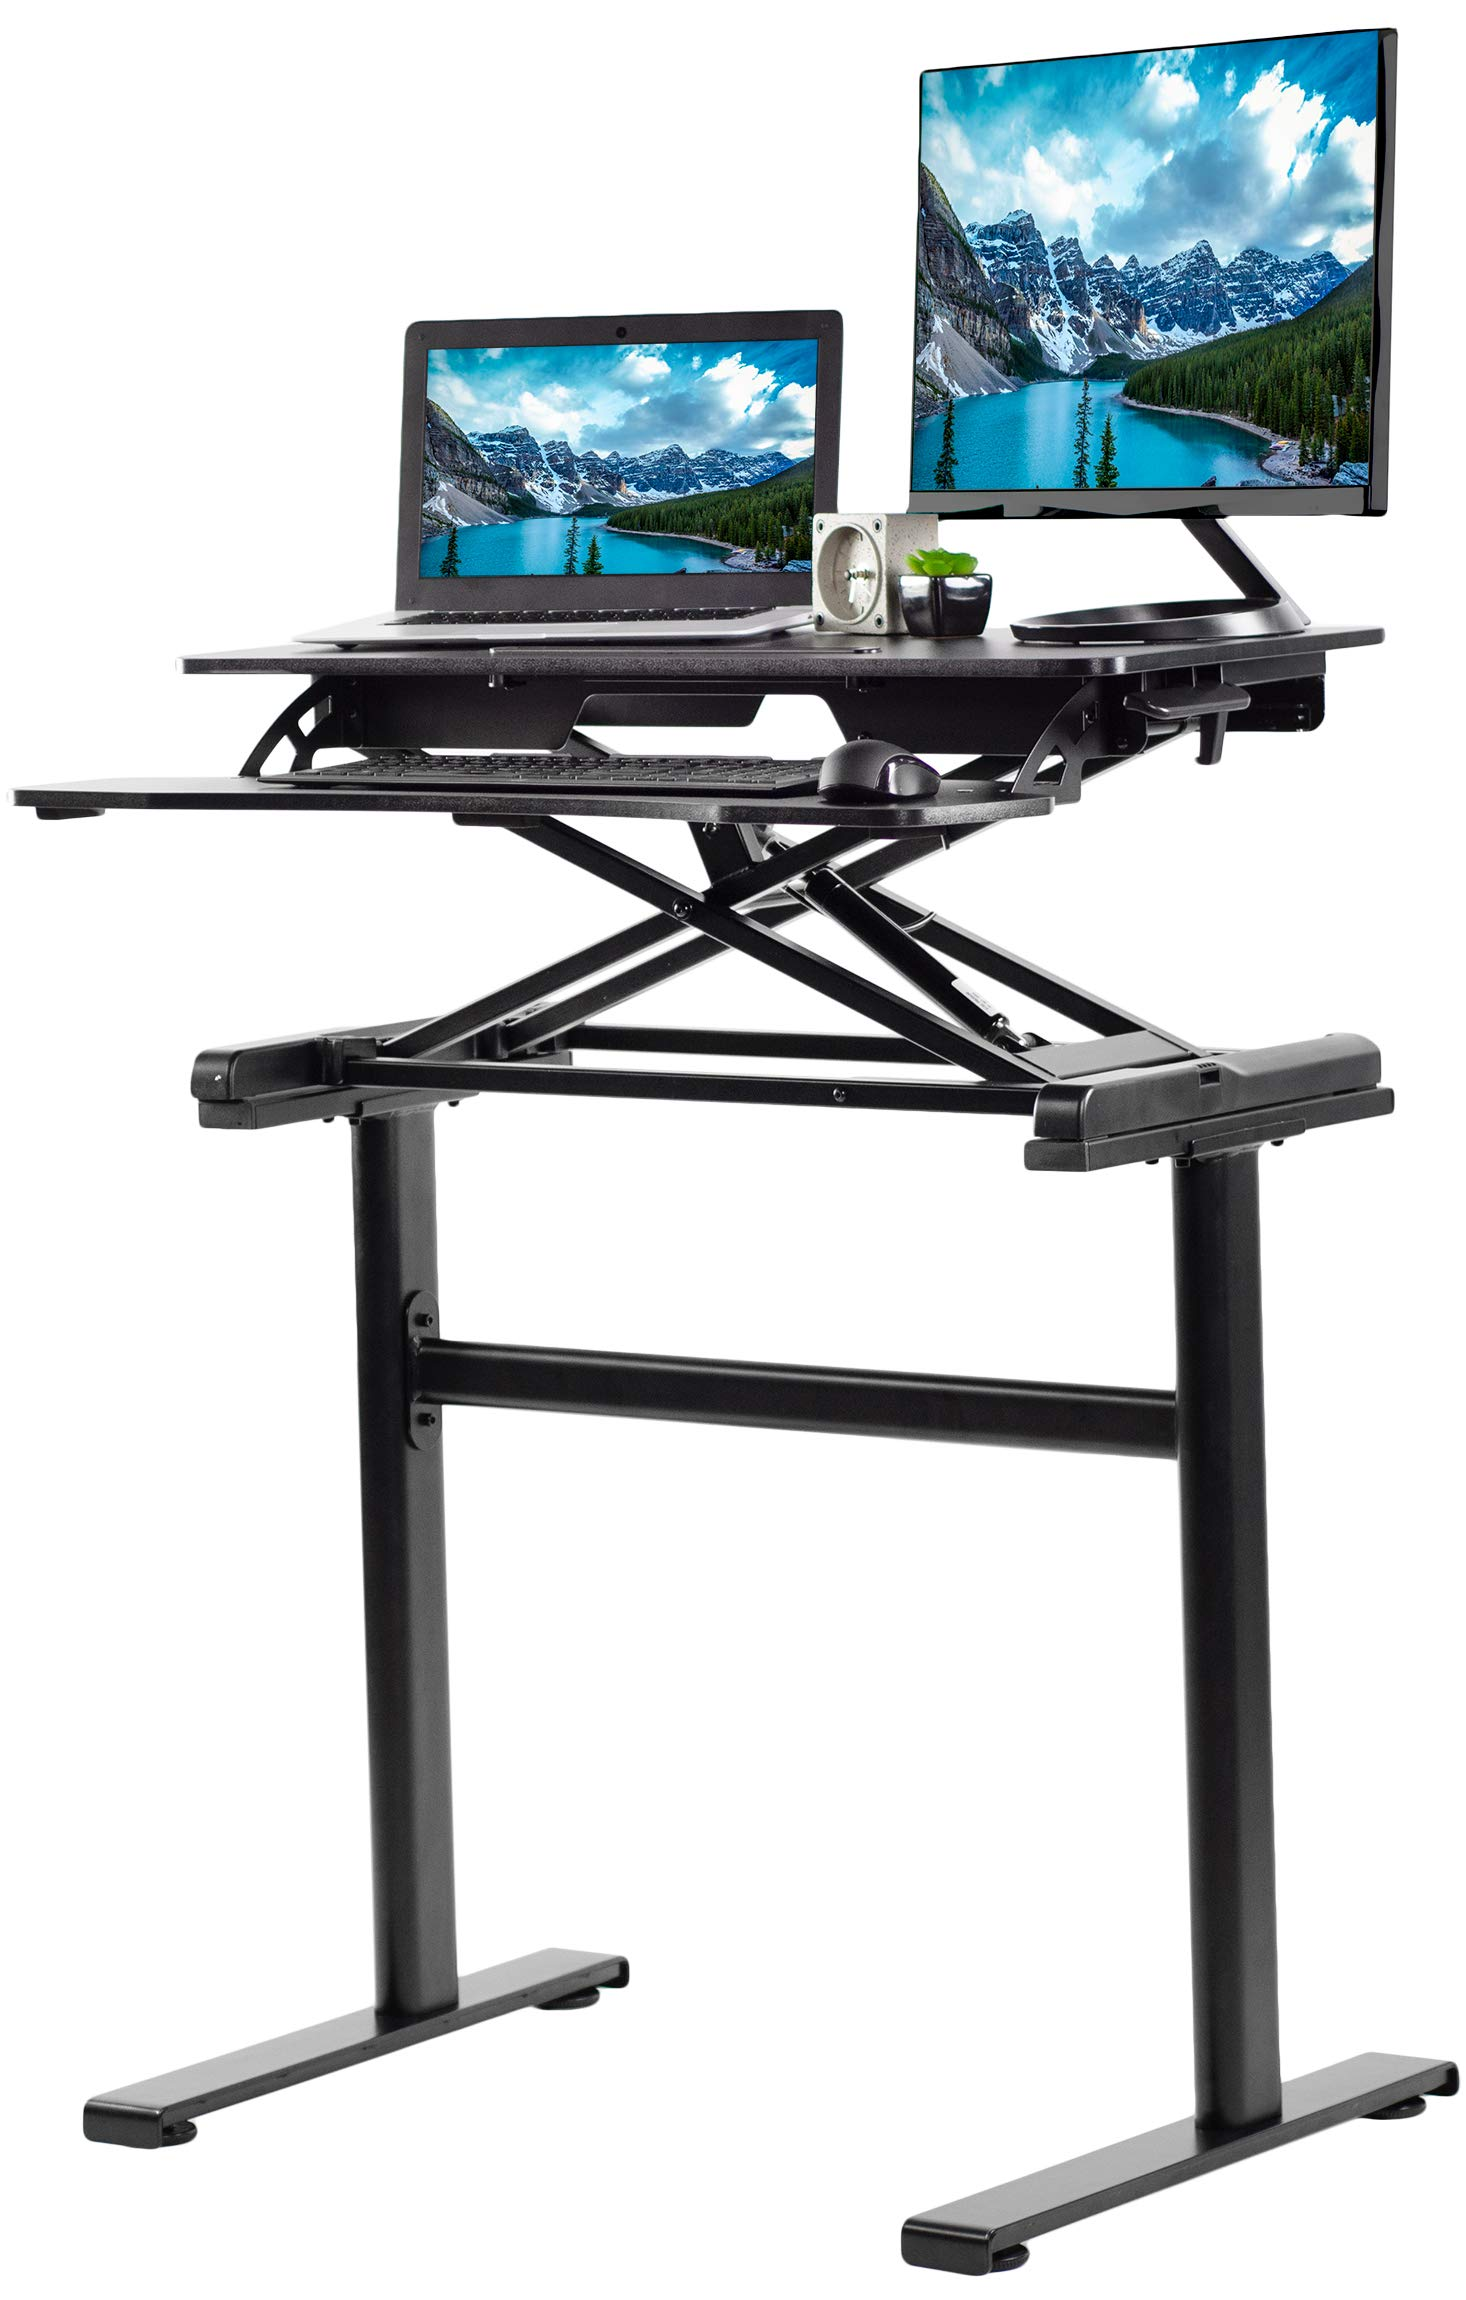 VIVO Black Height Adjustable Compact Sit to Stand Workstation ... on bike legs, standing desk girl, weight loss legs, coffee table legs, trestle table legs, bathroom legs, standing desk ikea, standing desk vintage, standing desk foot, standing desk shoes, chairs legs, standing leg exercises, standing desk kitchen, standing desk black, hiking legs, standing desk office, standing desk con set north america,